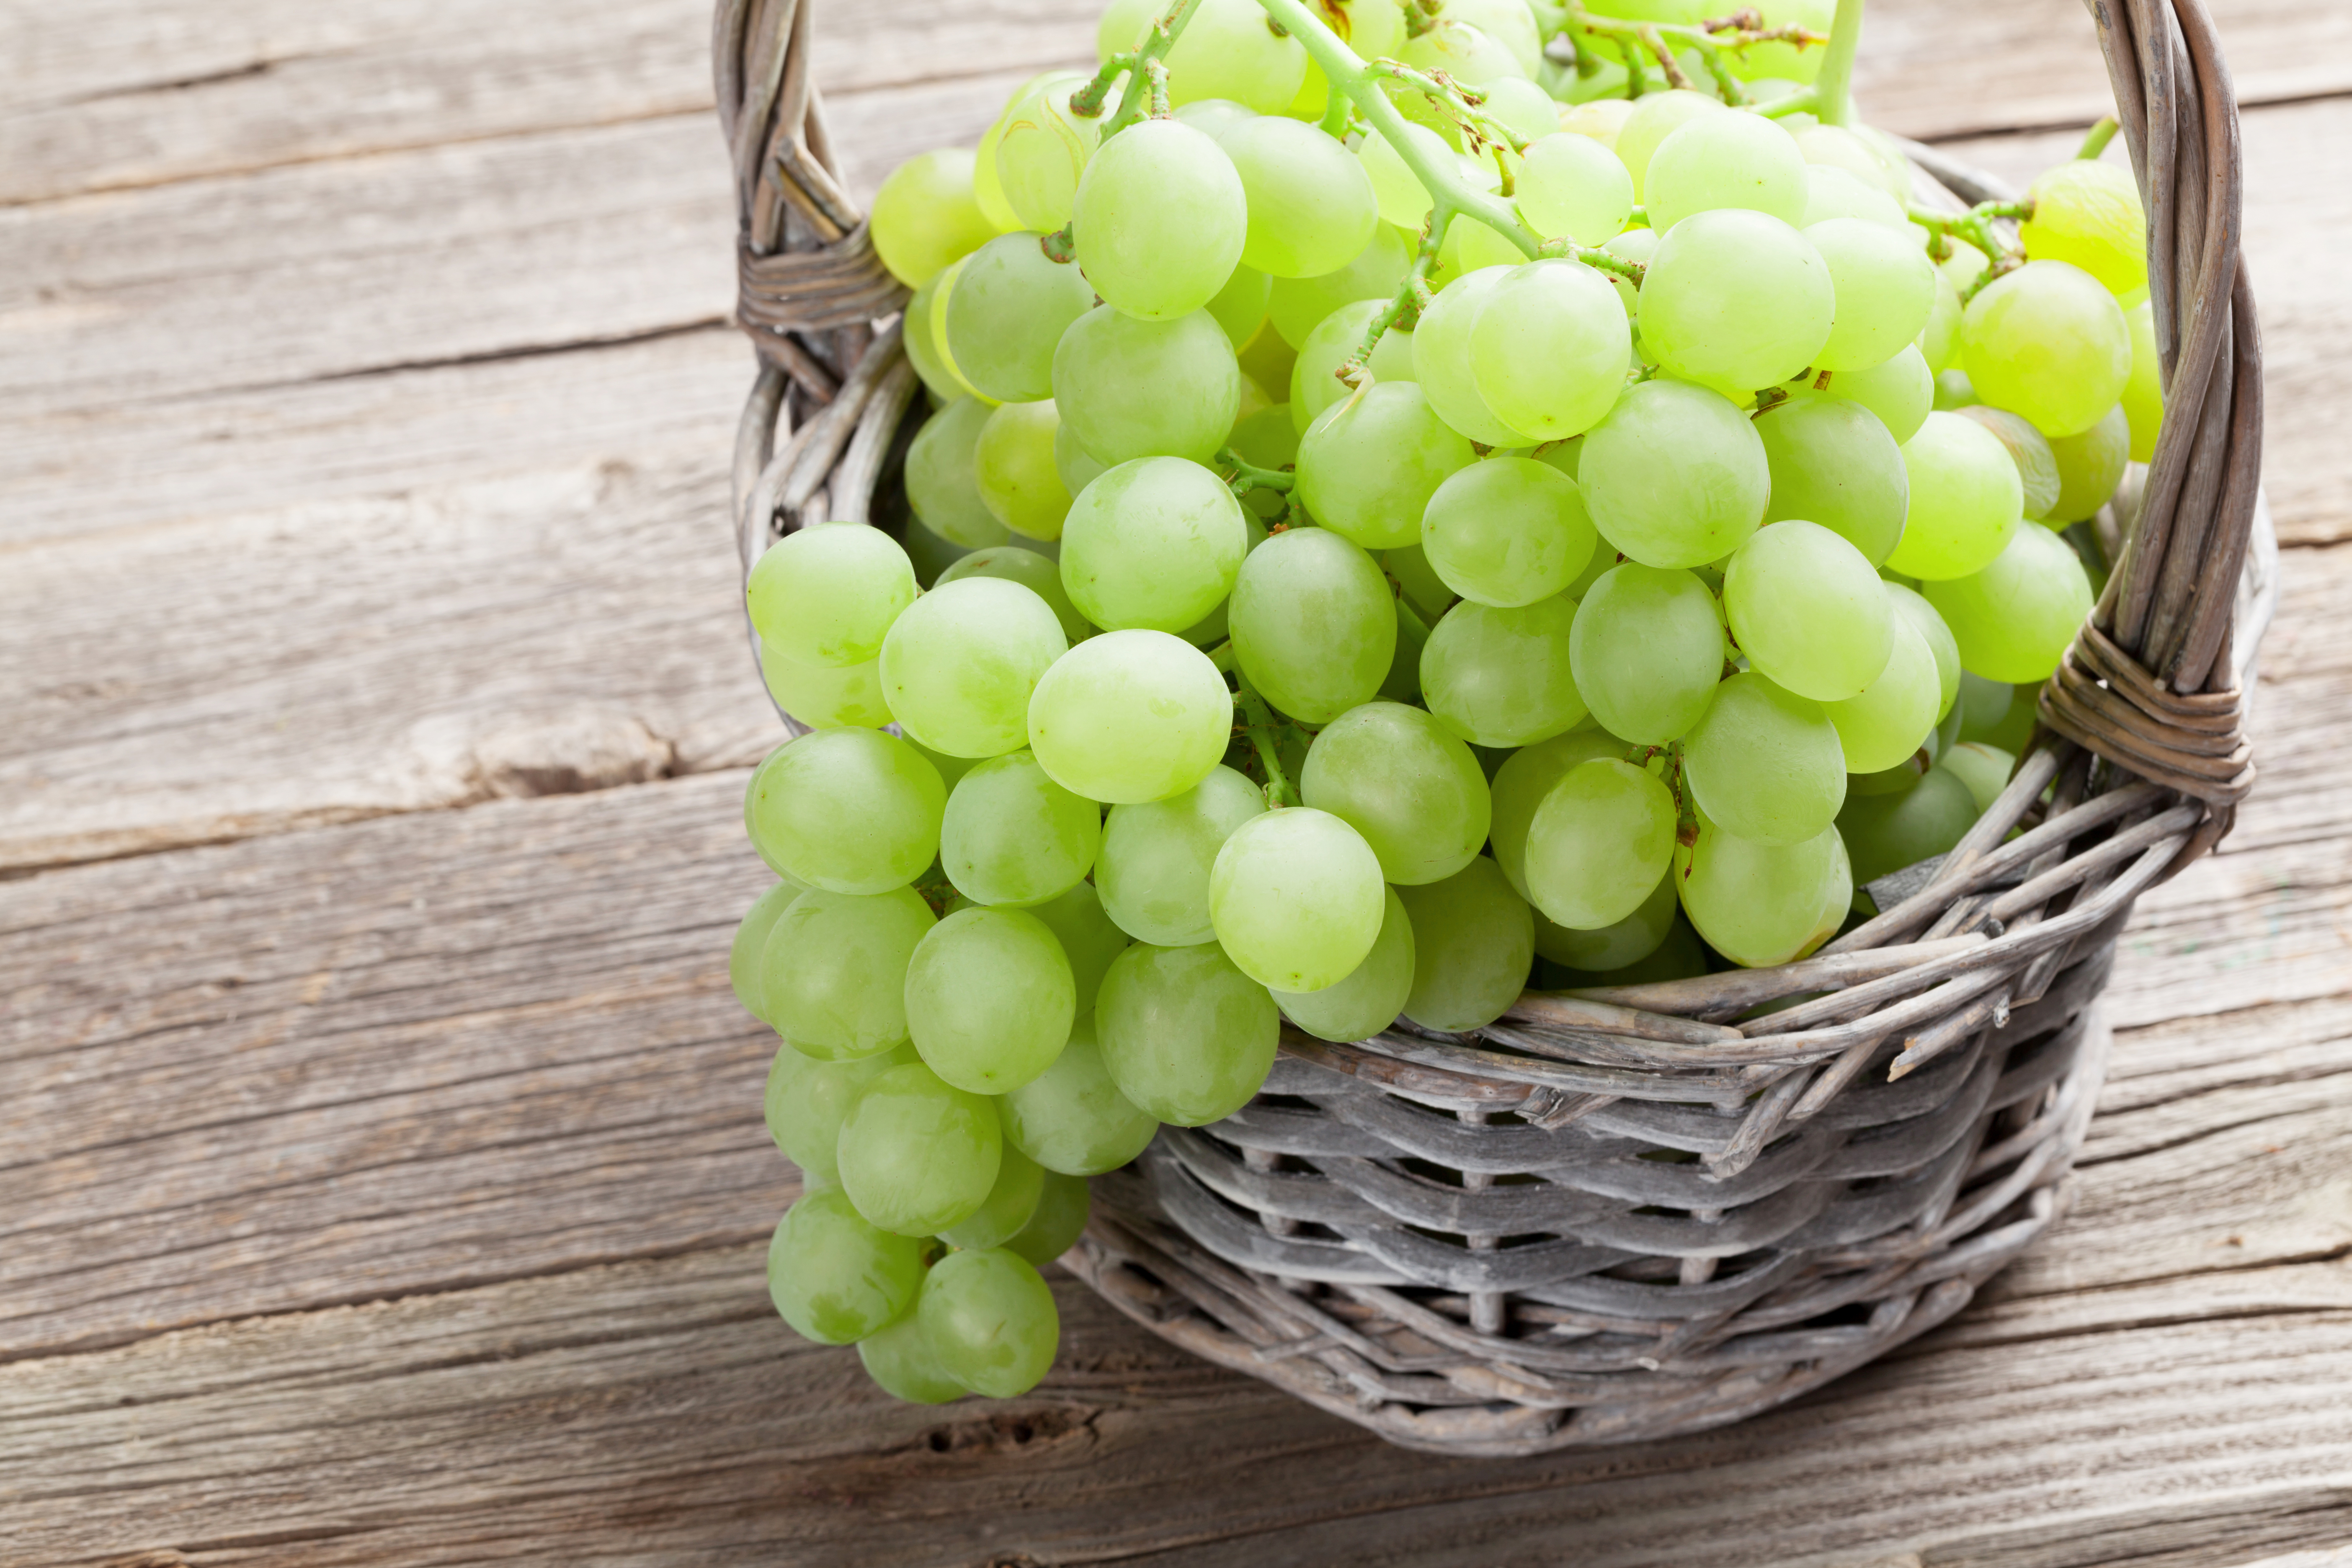 are green seedless grapes good for you?   healthy eating   sf gate